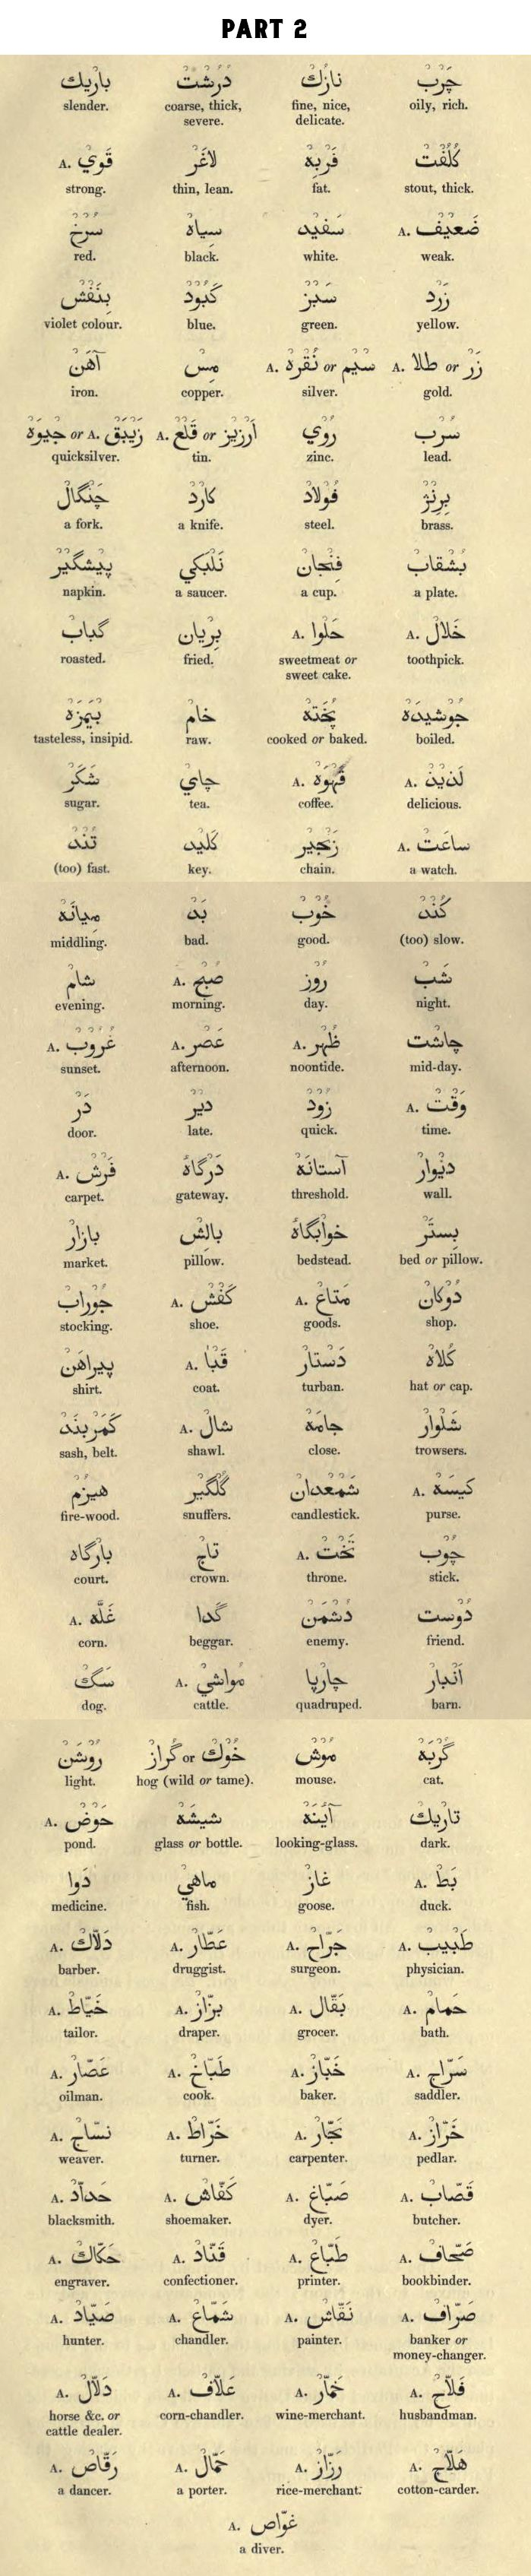 """Part 2 of Significant Words, From """"A grammar of the Persian language. To which are subjoined several dialogues; with an alphabetical list of the English and Persian terms of grammar, and an appendix on the use of Arabic words"""""""